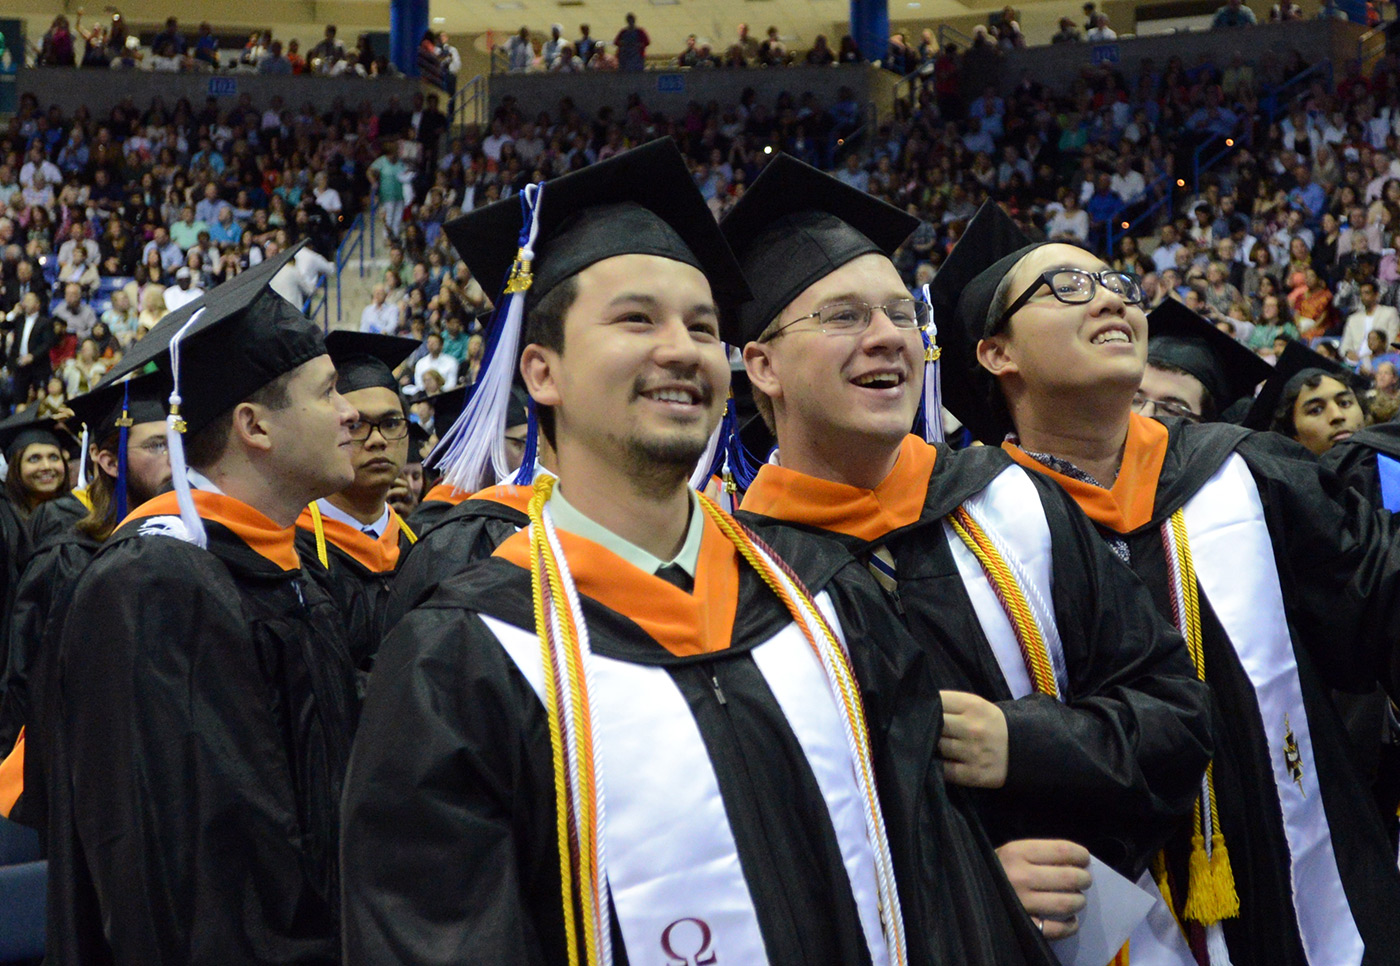 commencement-orange-hoods-males